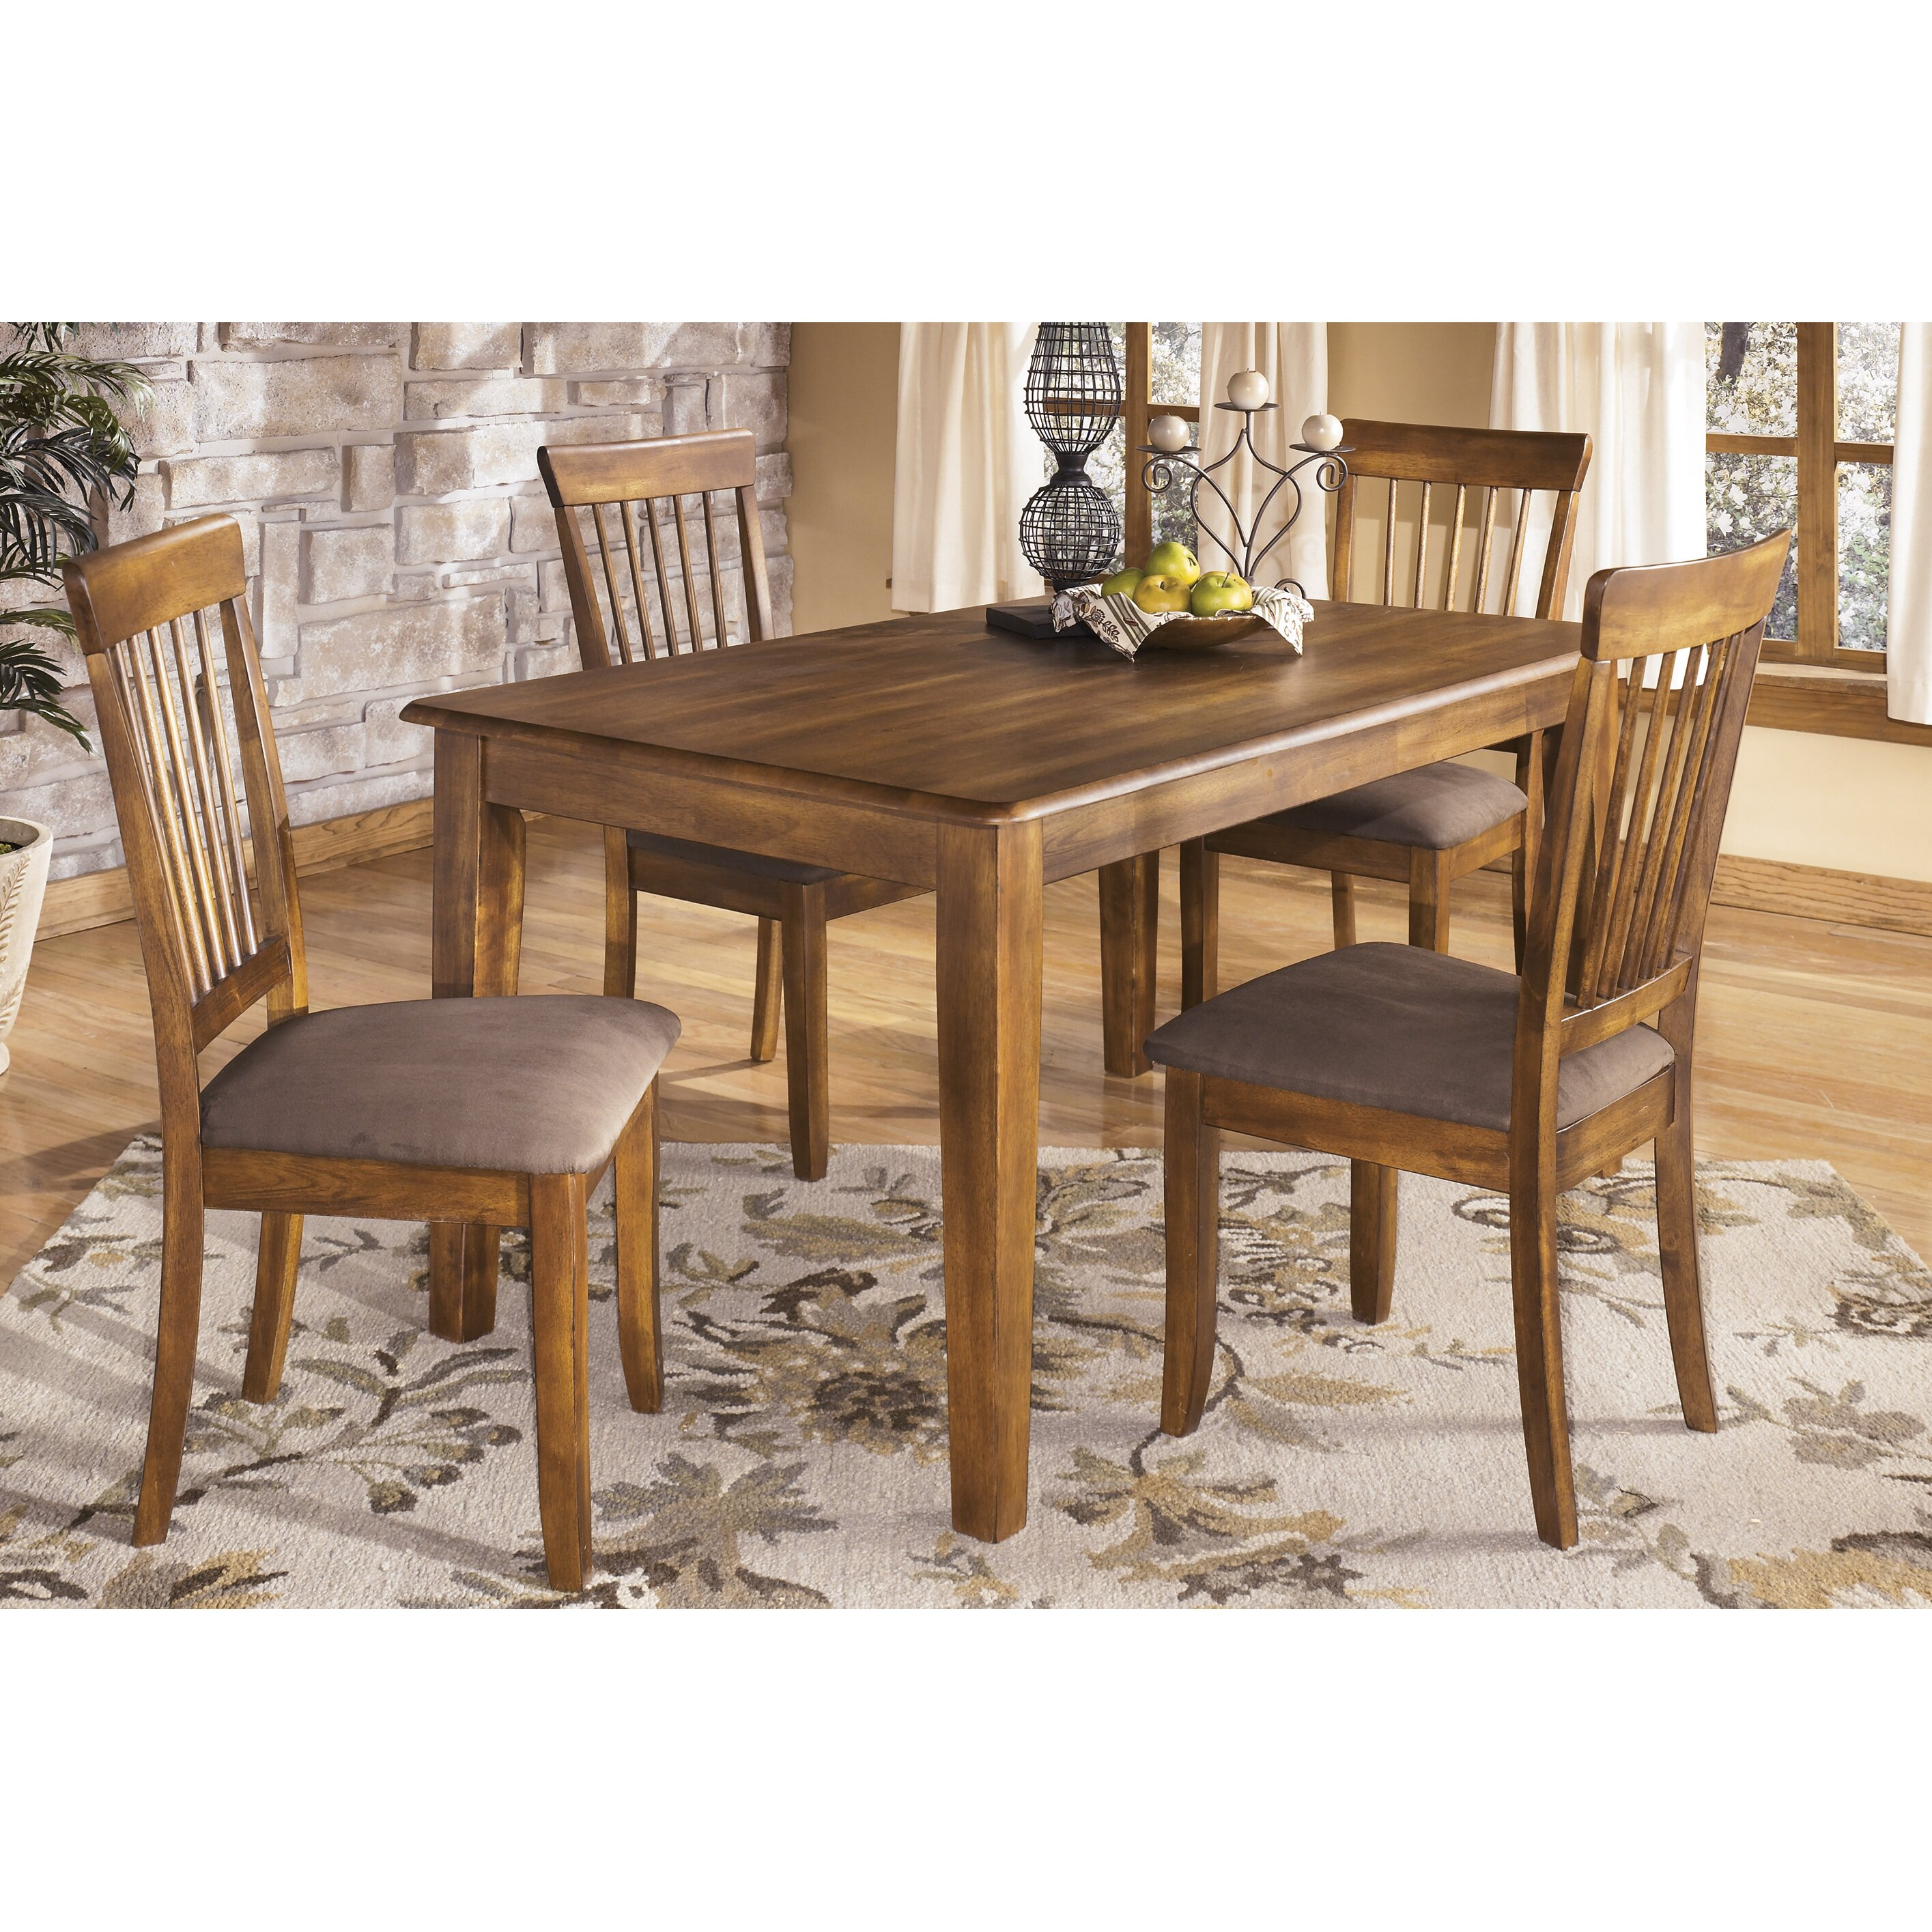 Loon peak kaiser point 5 piece dining set reviews wayfair for 2 piece dining room set